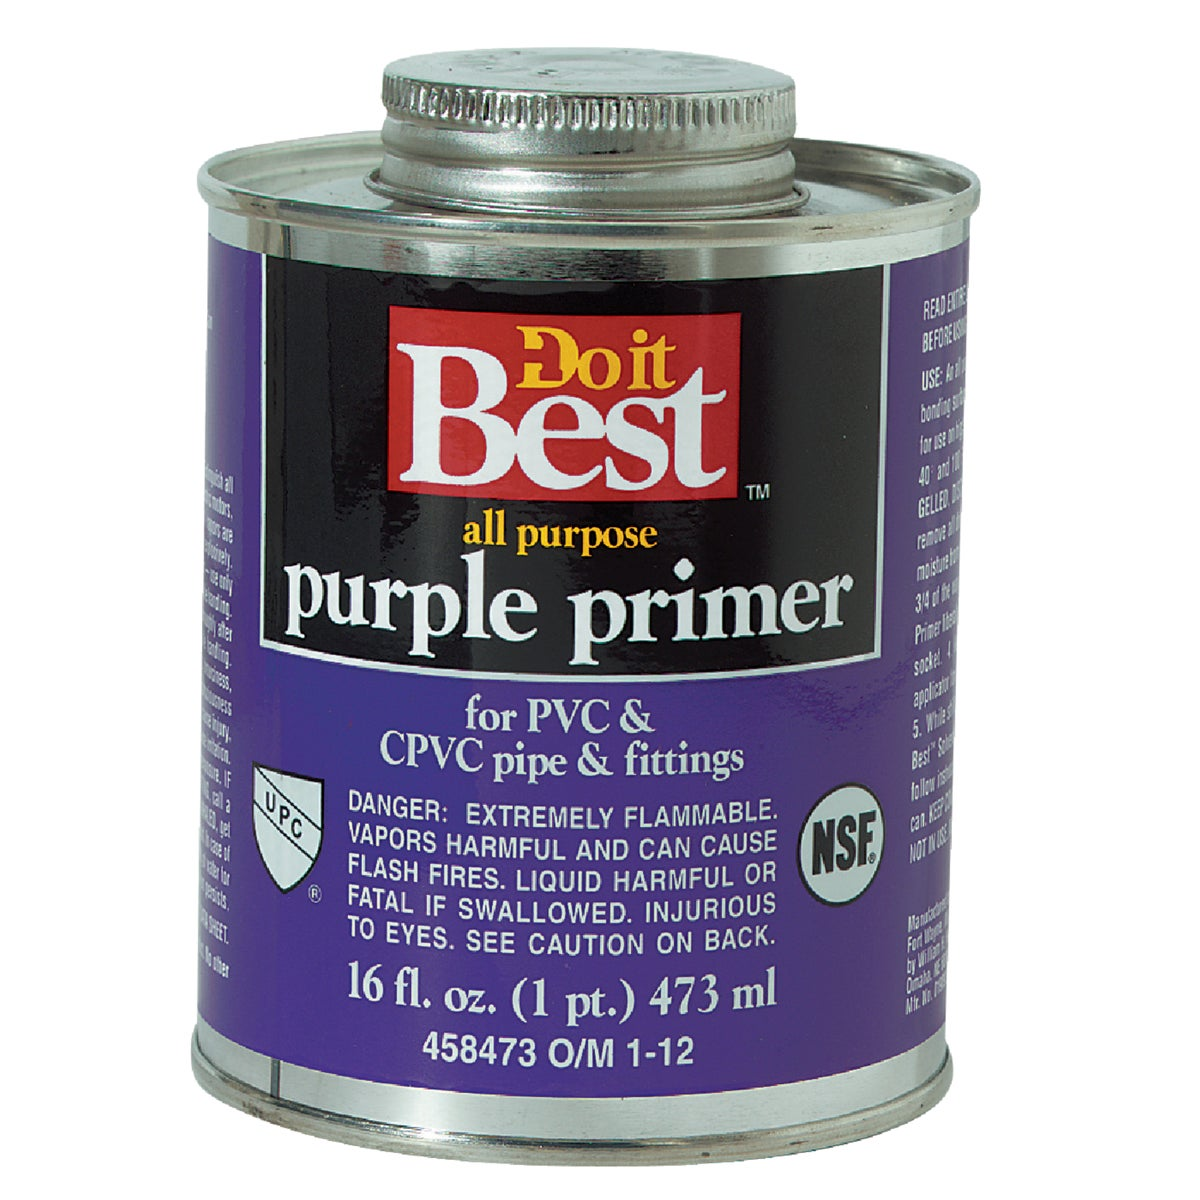 PINT PURPLE PRIMER - 019092 by Wm H Harvey Co